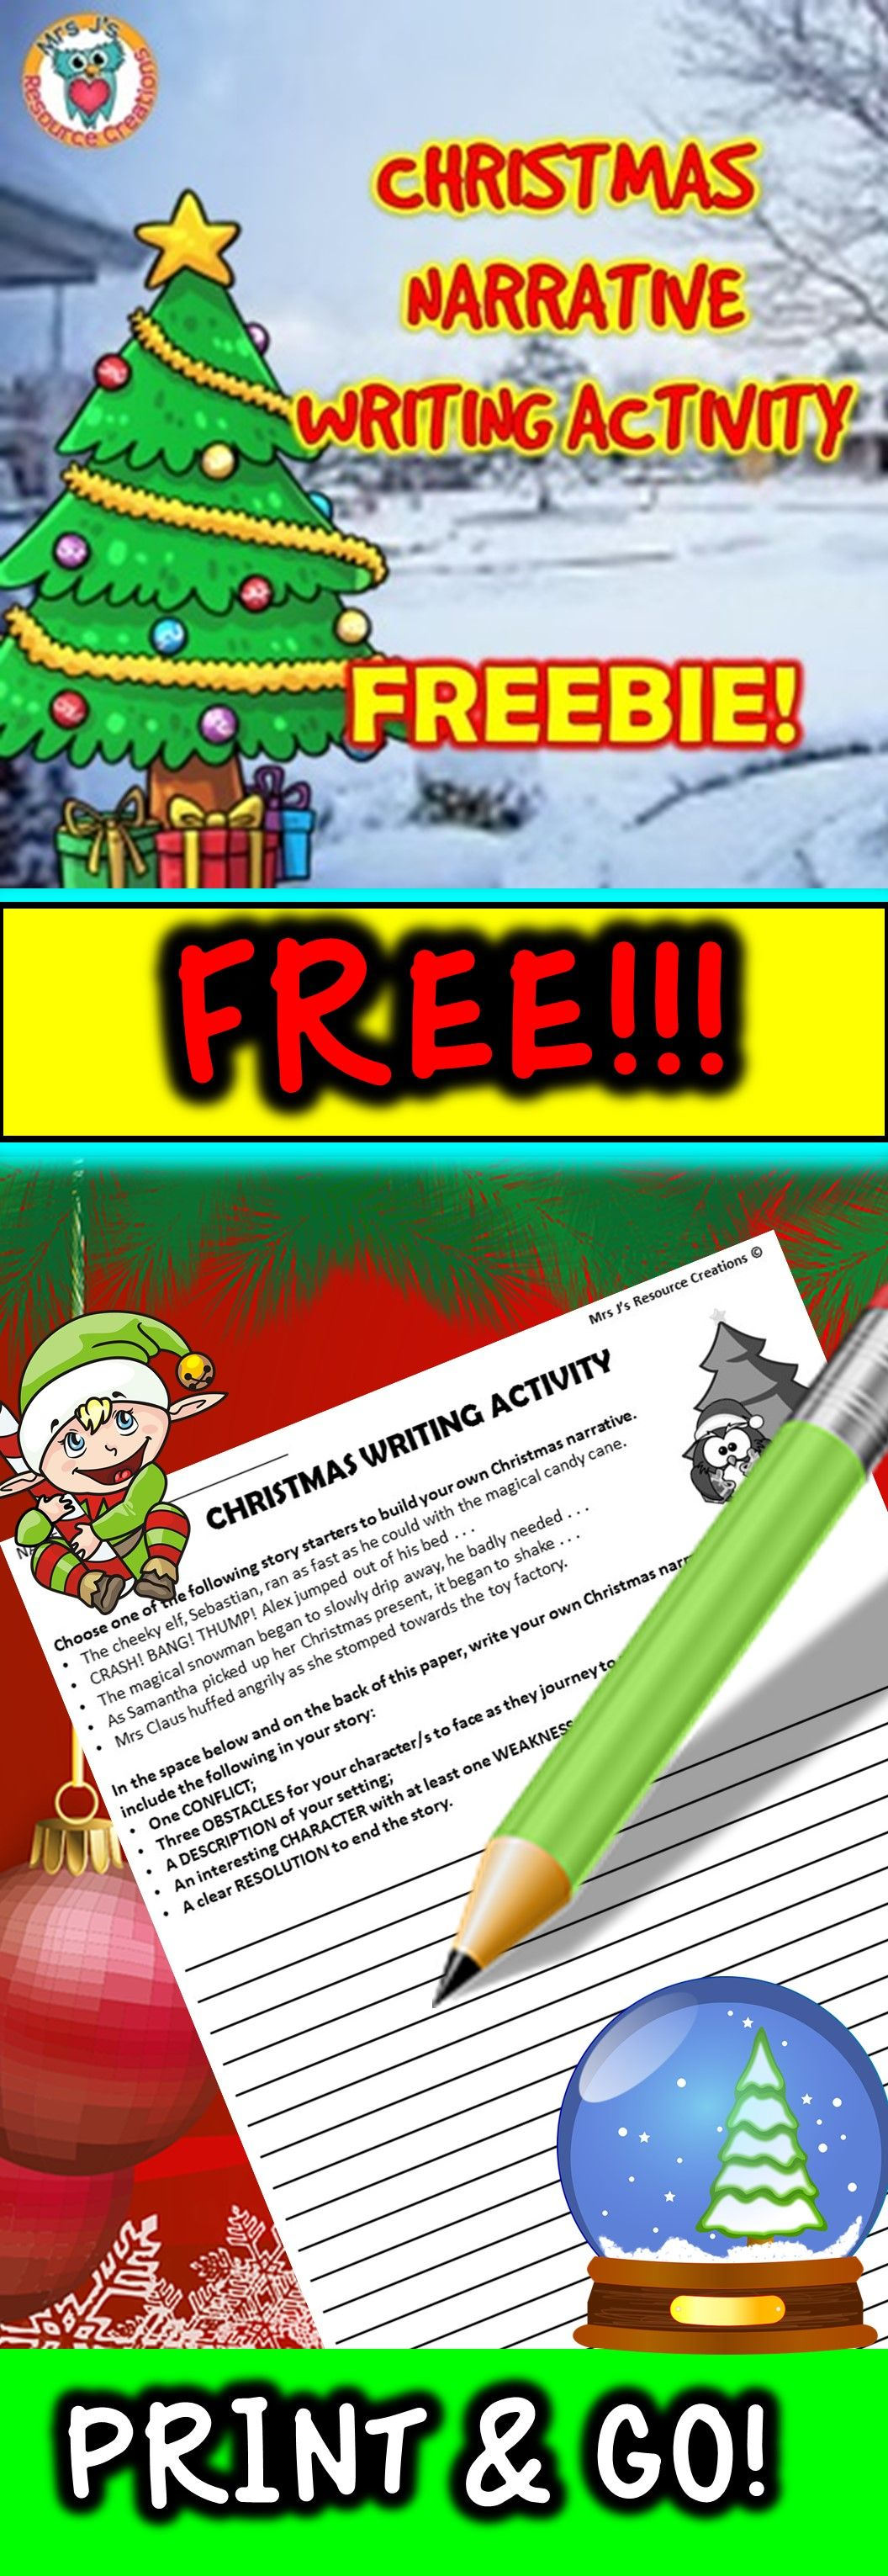 Christmas Free Writing Activity Five Fun Prompts On One